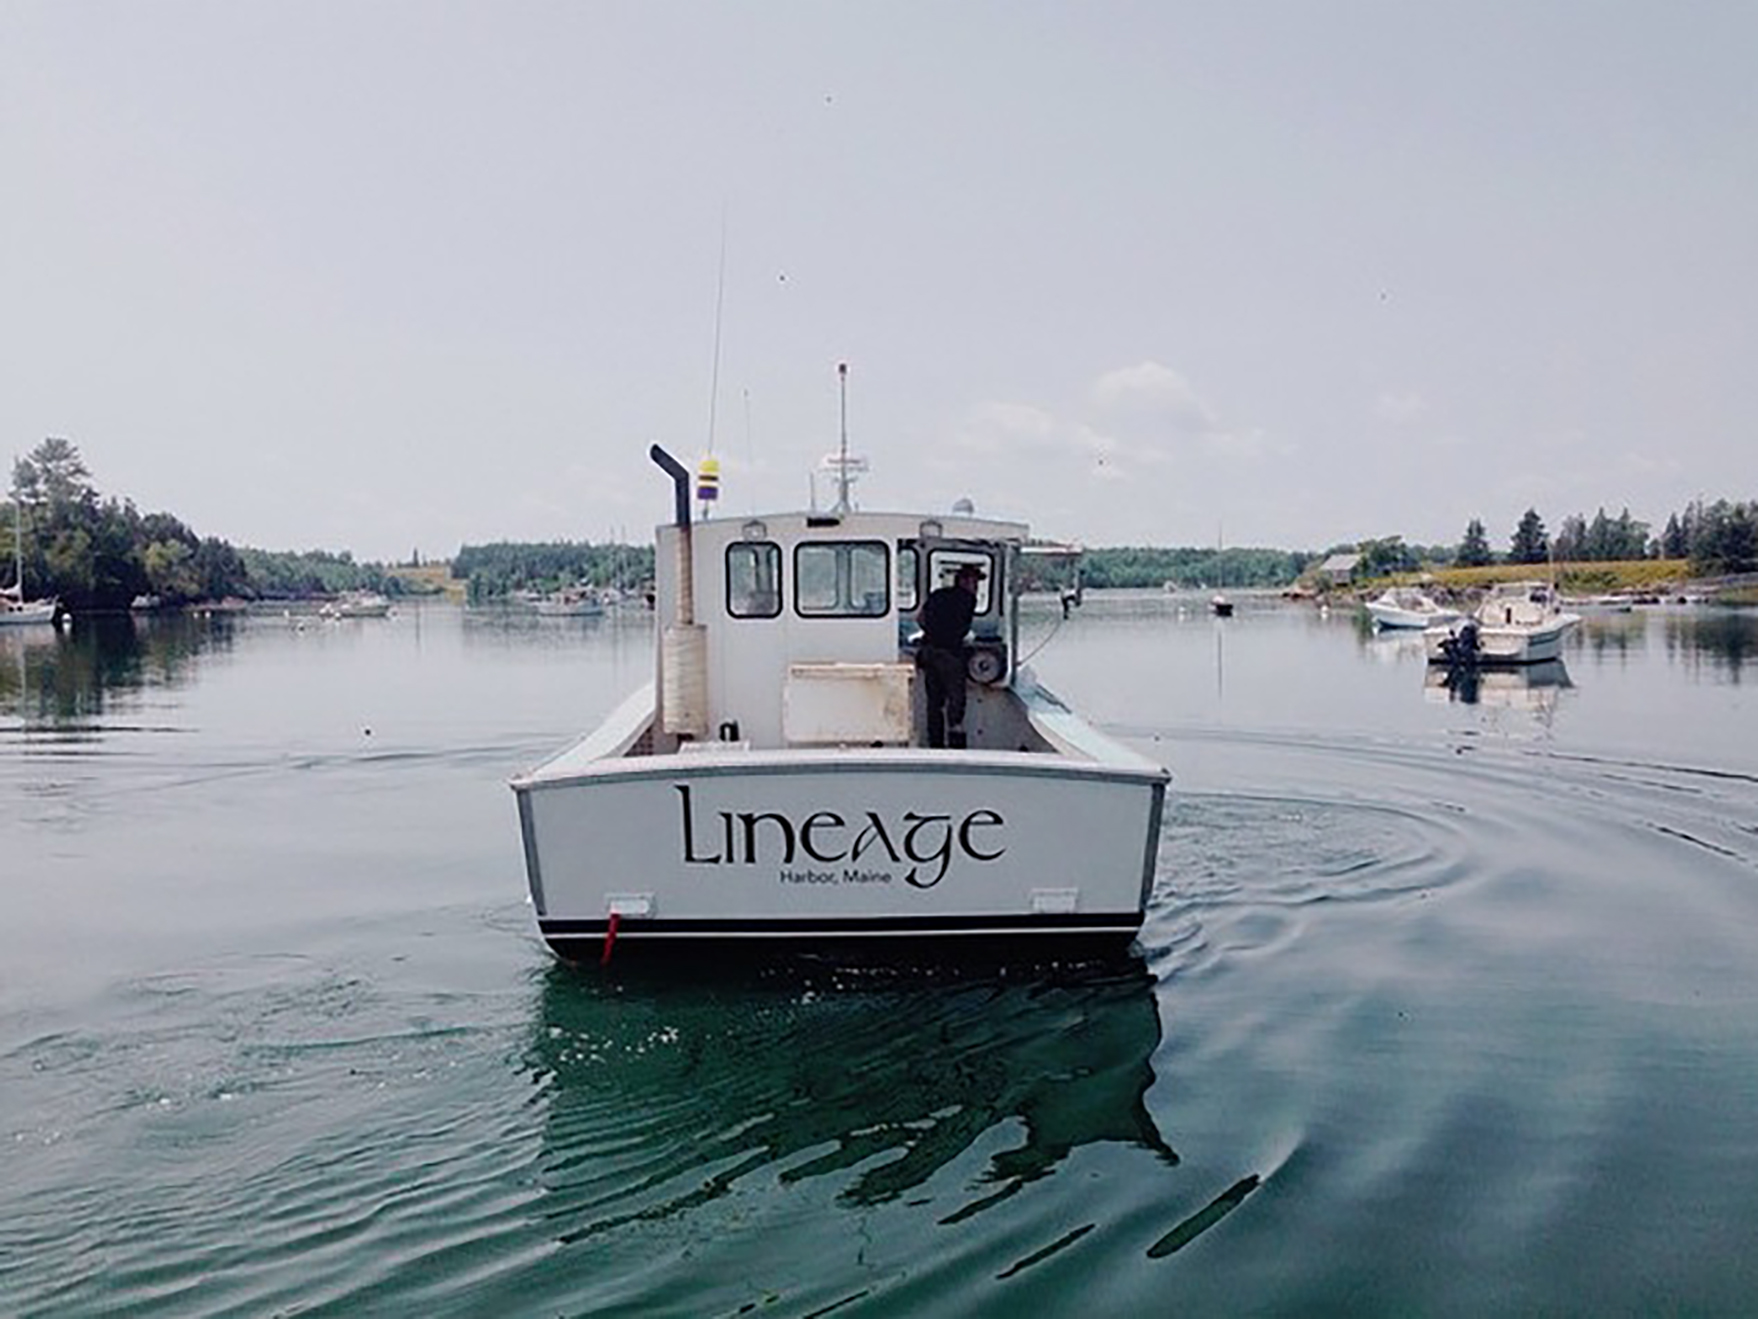 After selling the Cheryl Lee, Zeb purchased his current fishing vessel, the Lineage – Photo courtesy of Sarah Xiao